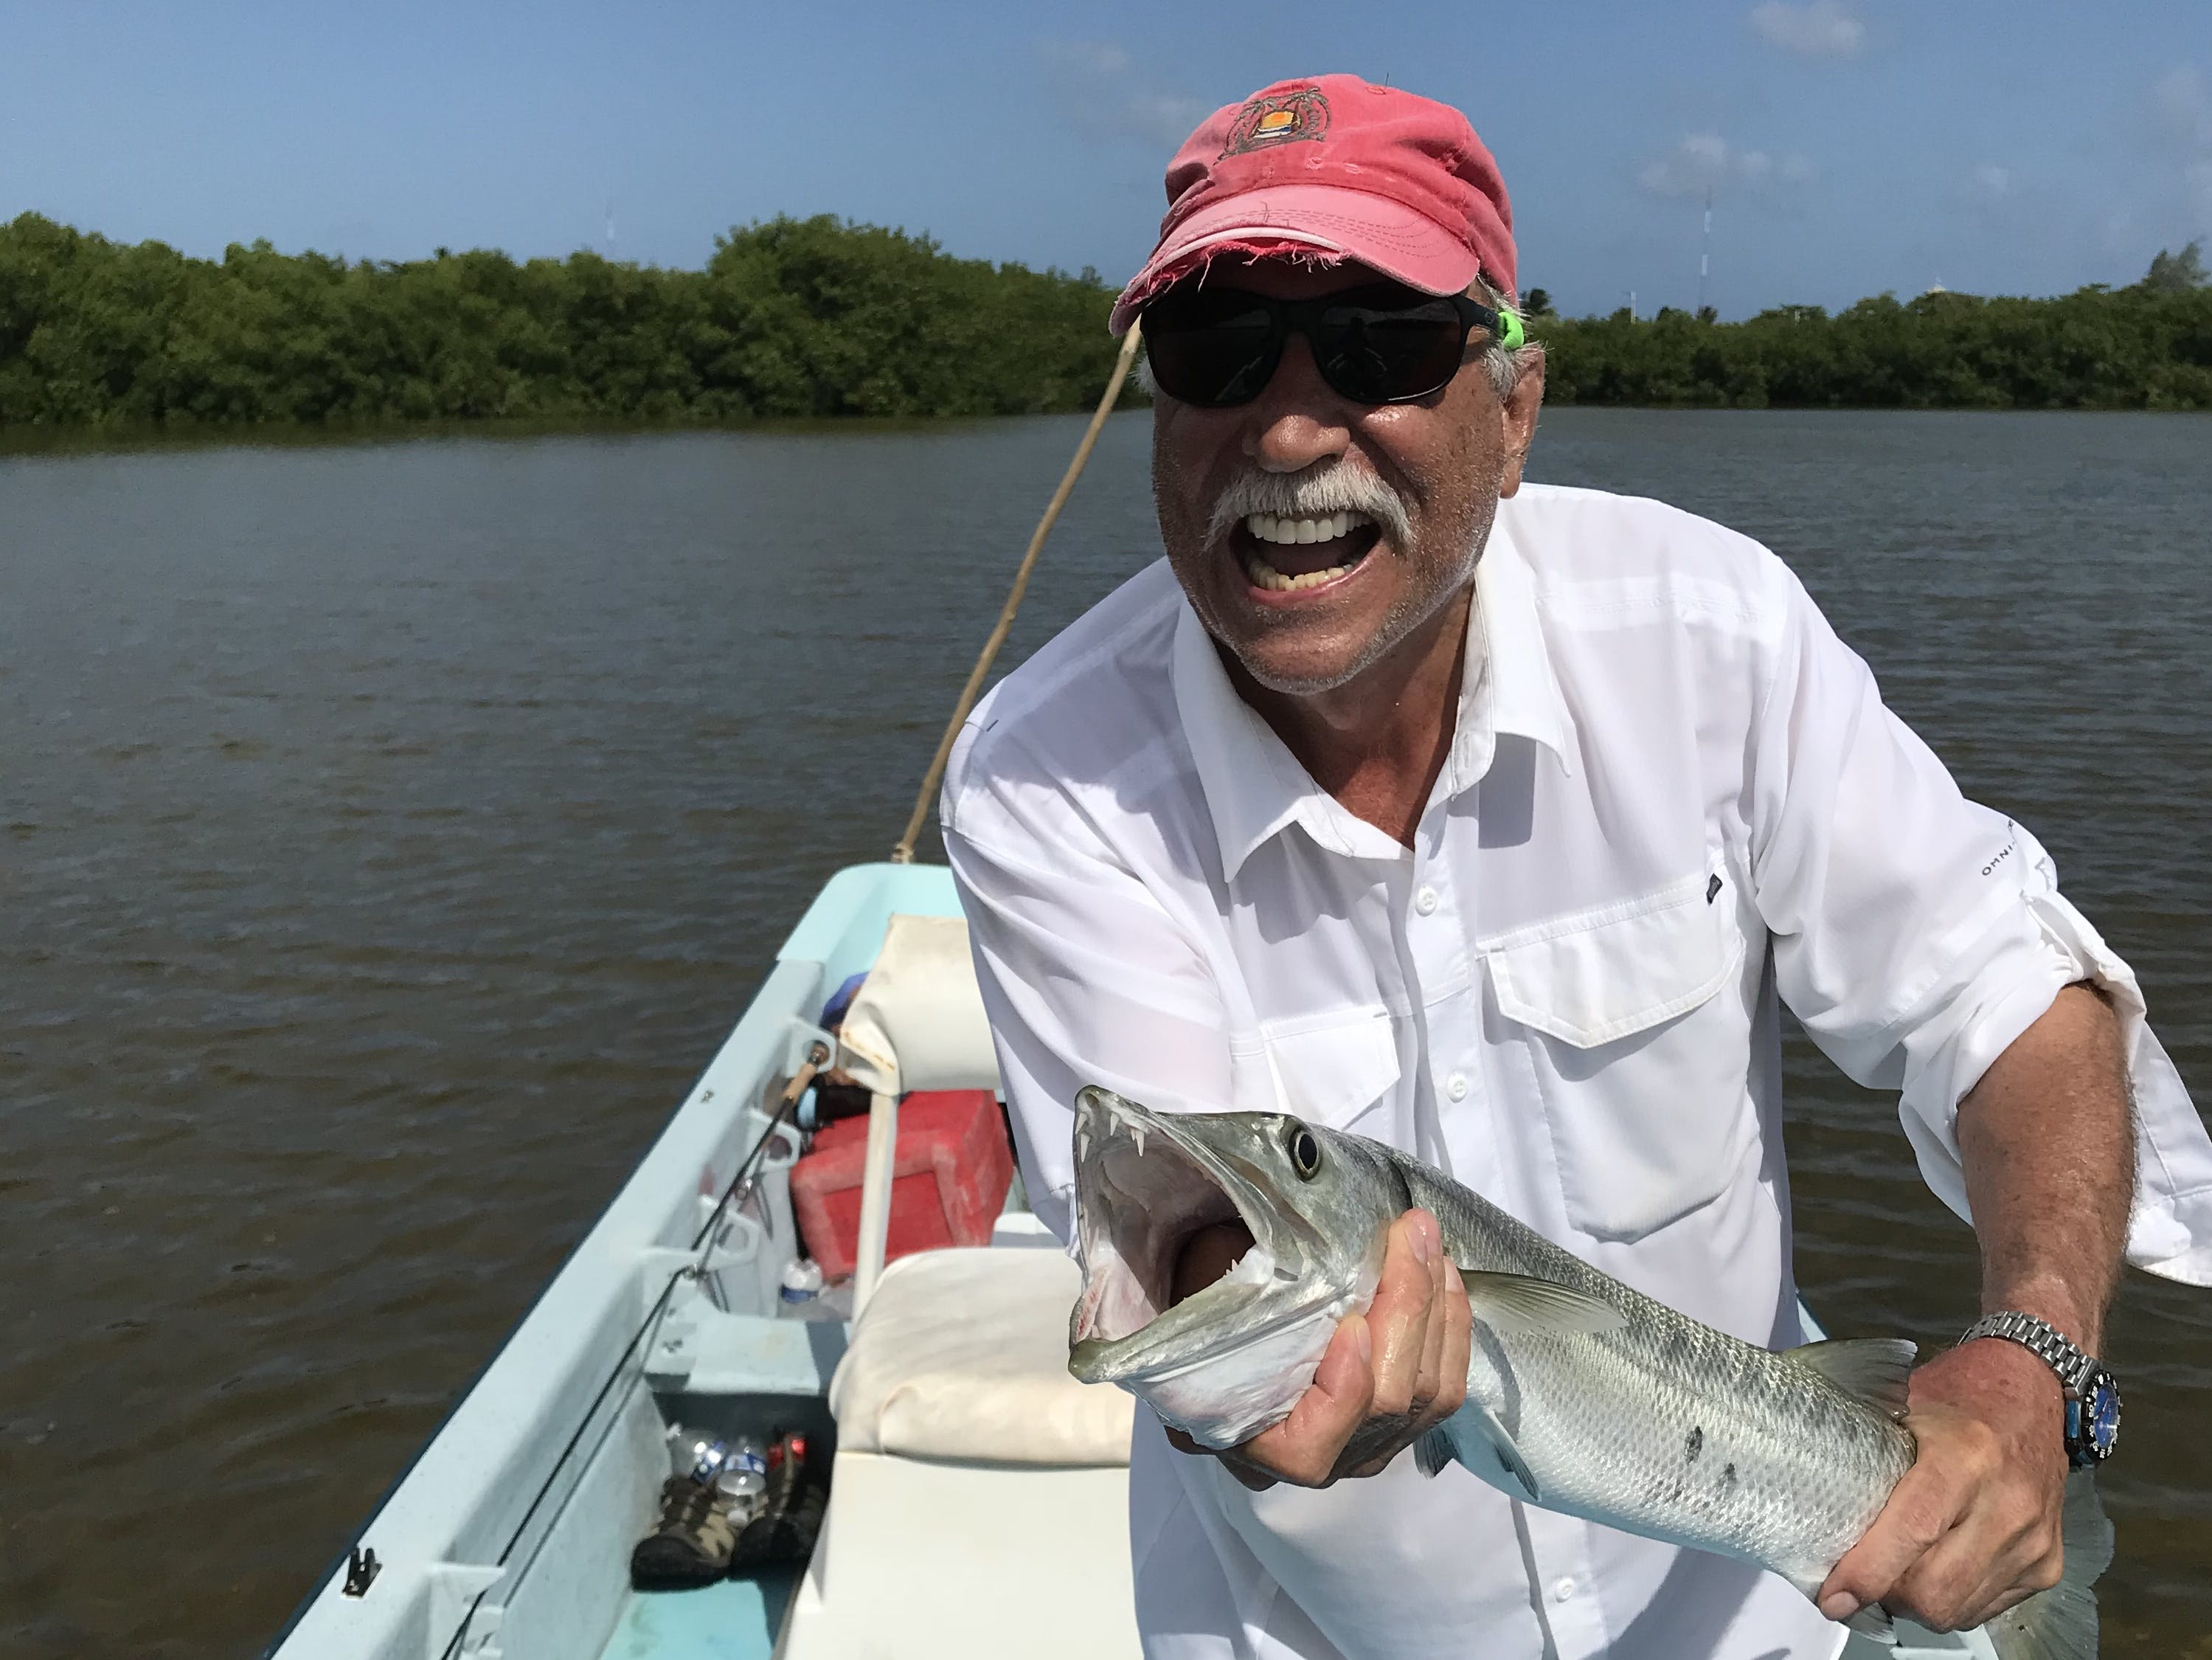 Gordon Paxman holding a fish after a successful day of fly fishing